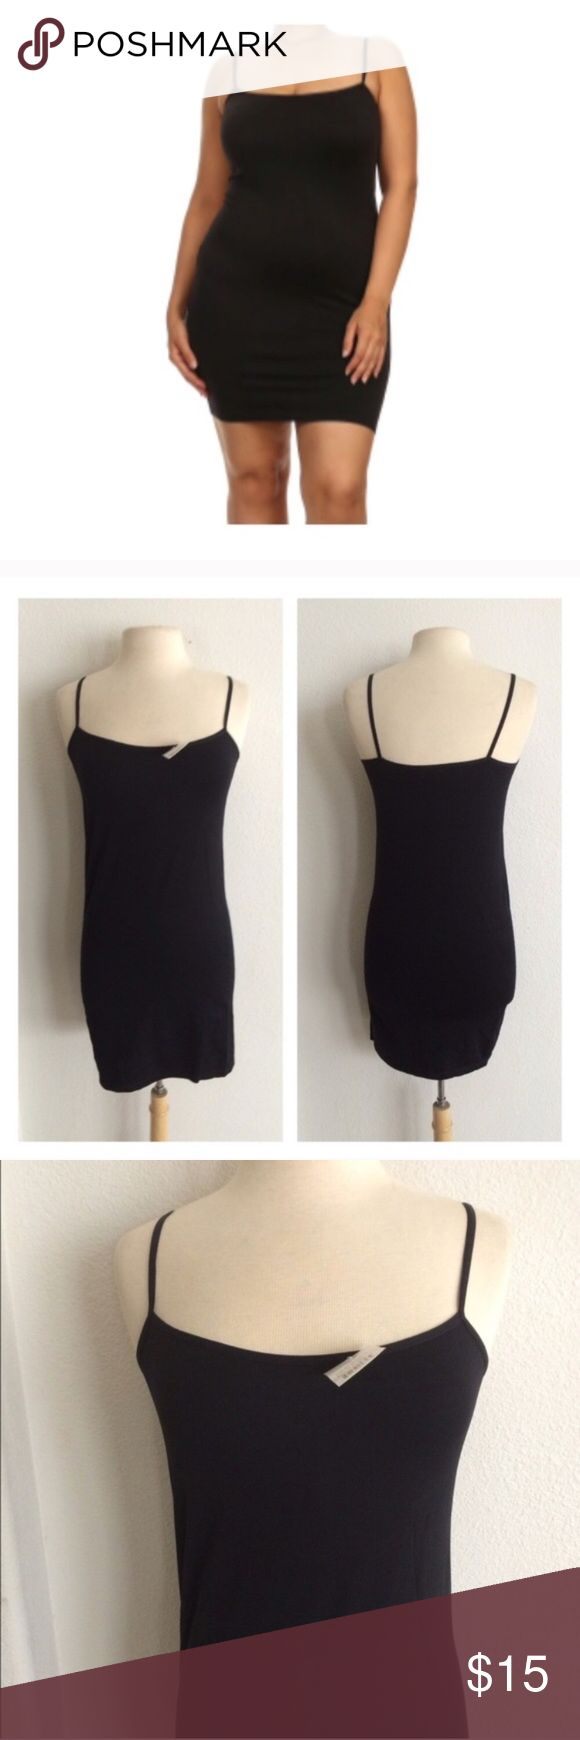 """(L-2x) Black cami slip Plus size camisole slip. 92% nylon/ 8% spandex. Great for wearing under tunics/ dresses that are slightly sheer!  Measures 32"""" long with a 30"""" bust Bust stretches comfortably to about 46"""". These stretch well beyond measurements. I would recommend this for L-2x.  *Please note: this is not a dress. It's meant to be worn under something.  Availability: 3 ⭐️This item is brand new with tags 💲Price is firm unless bundled ✅Bundle offers Tops Camisoles"""